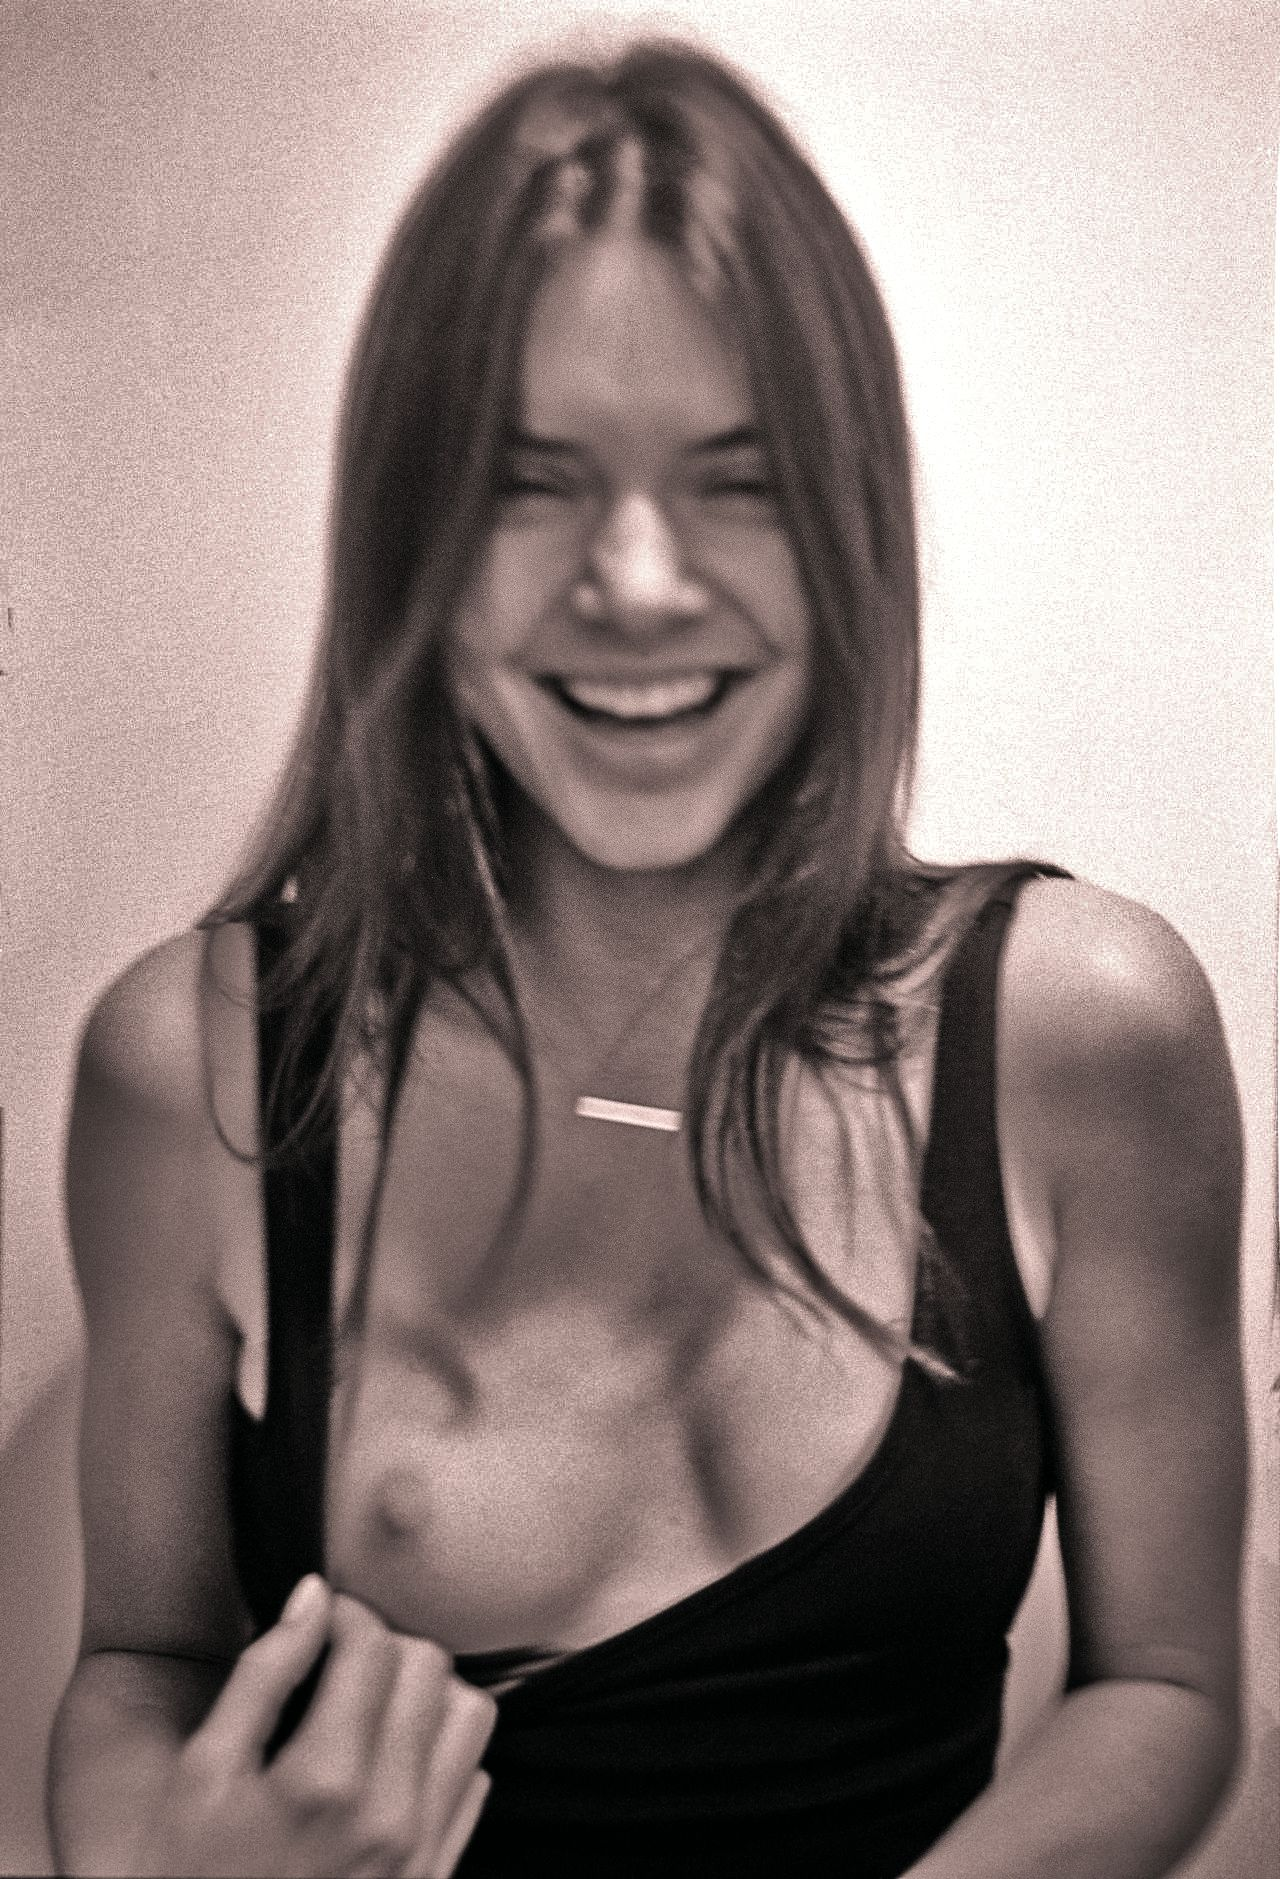 Kendall Jenner Boobs Phot...